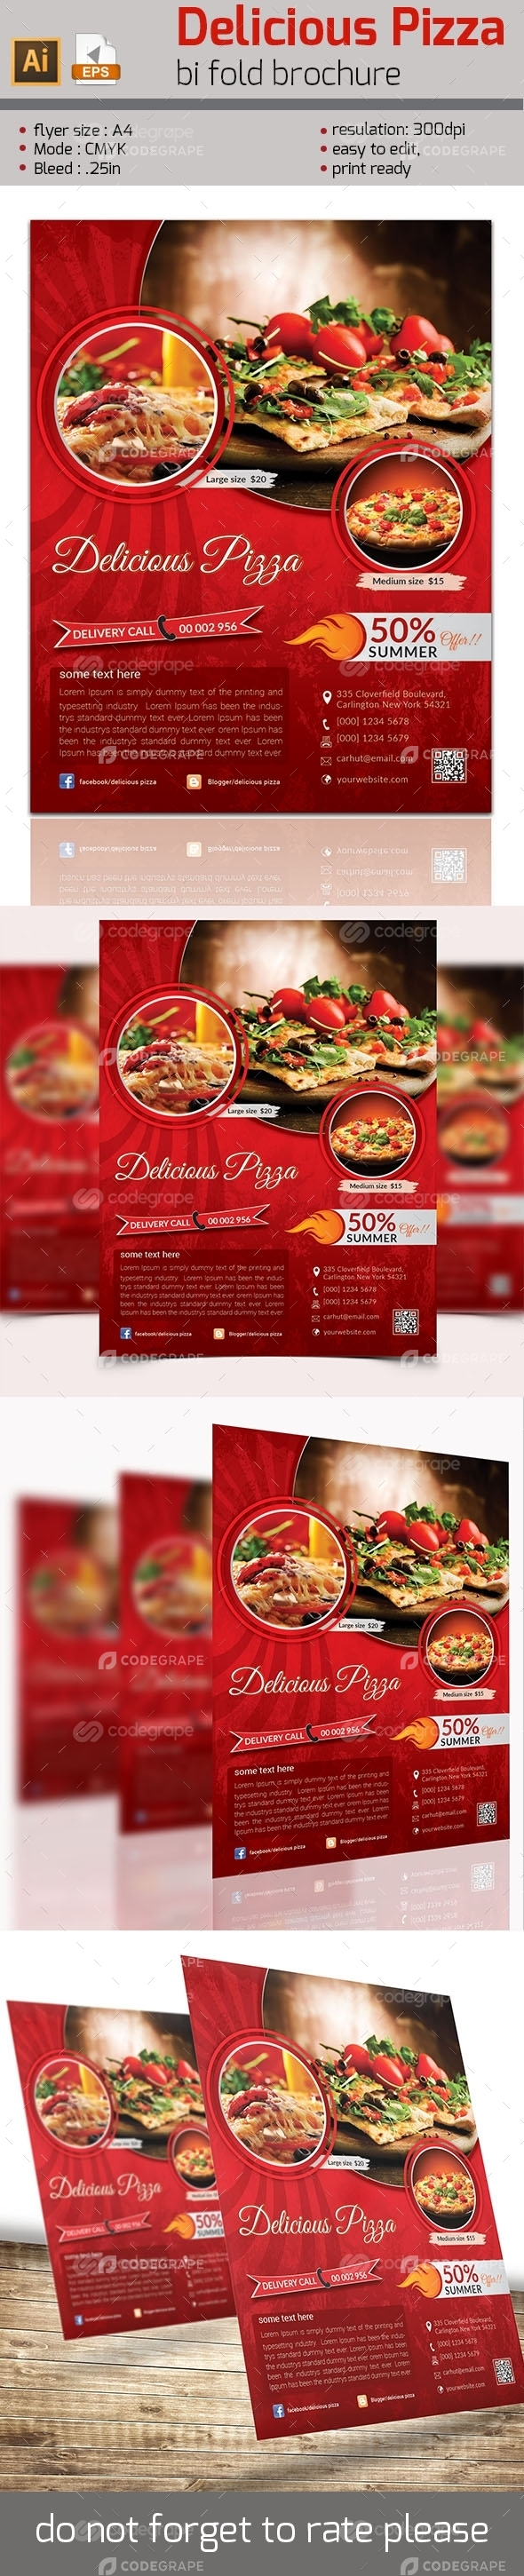 Delicious Pizza Flyer Template